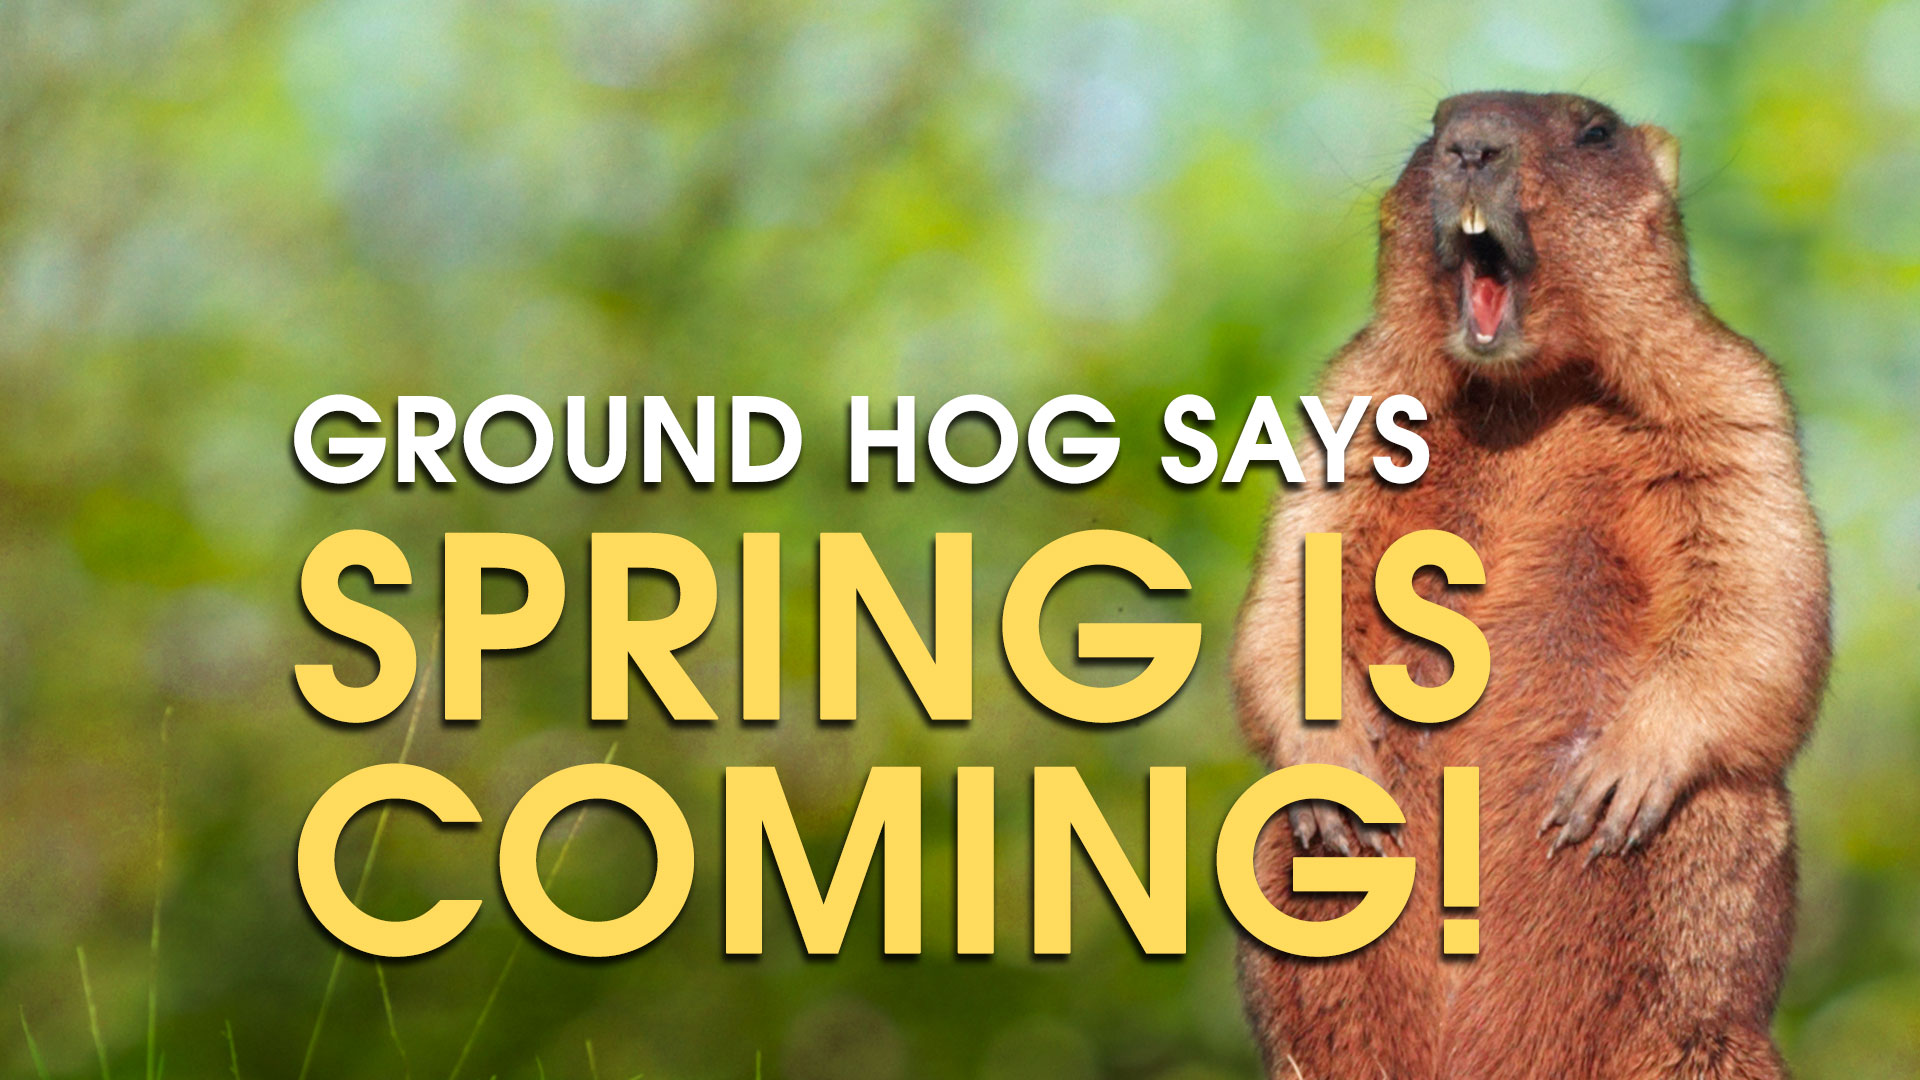 Who Cares if the Ground Hog got it right, Spring is STILL Coming! I promise.